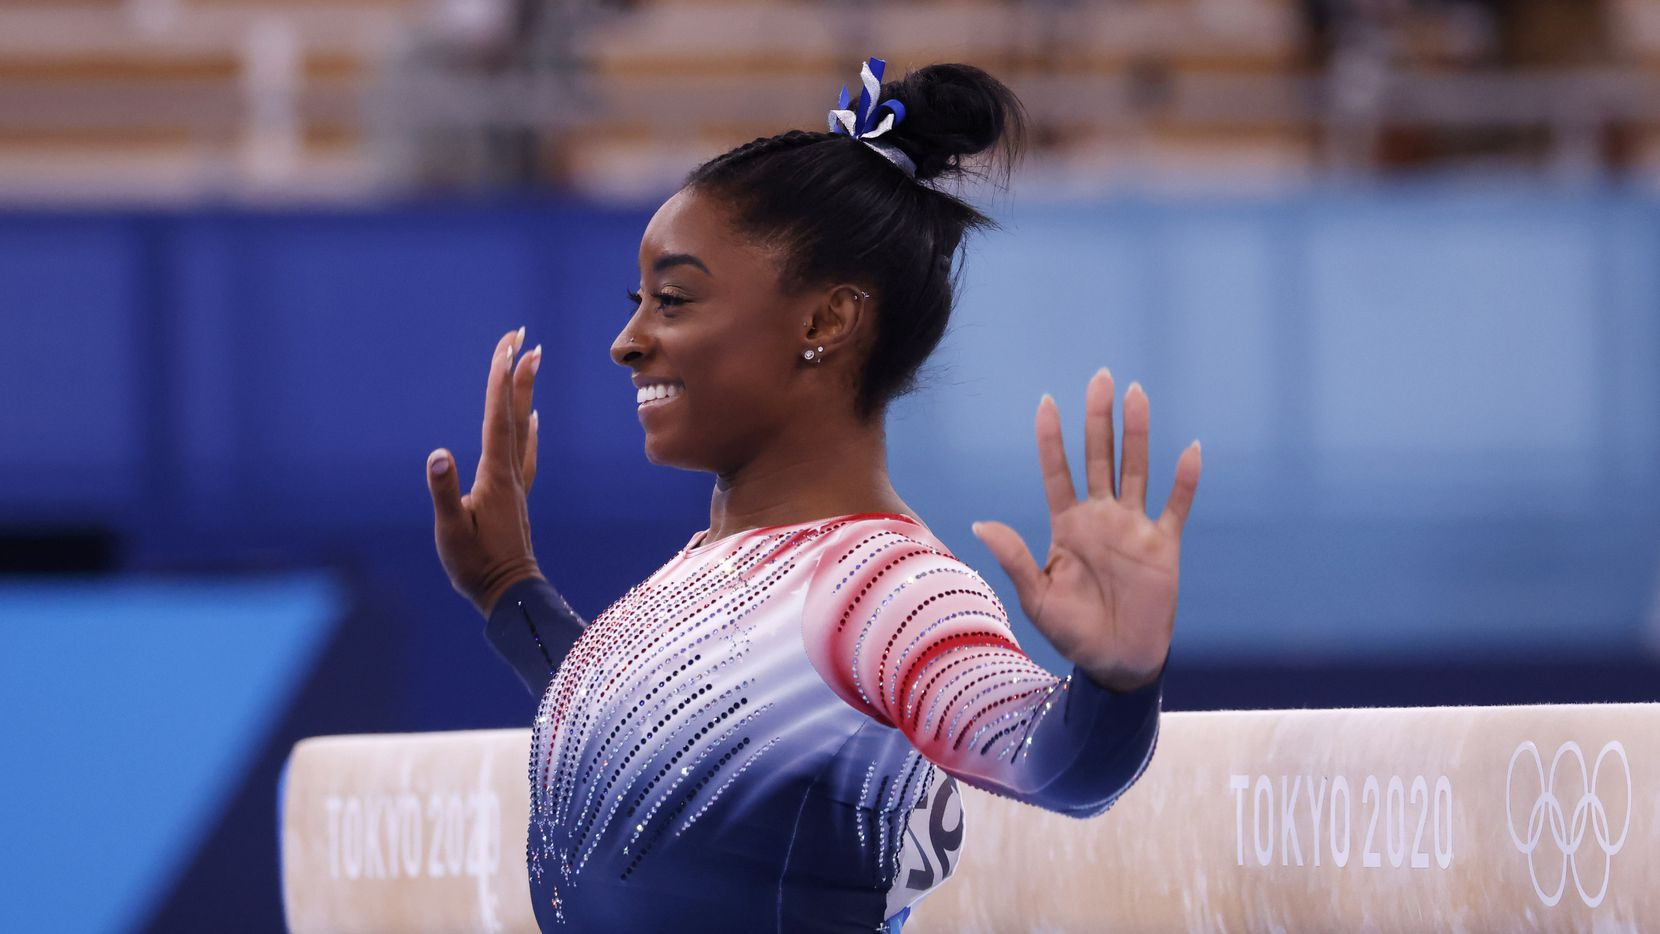 USA's Simone Biles competes in the women's balance beam final at the postponed 2020 Tokyo Olympics at Ariake Gymnastics Centre, on Tuesday, August 3, 2021, in Tokyo, Japan. Biles placed third in the event, earning a bronze medal.